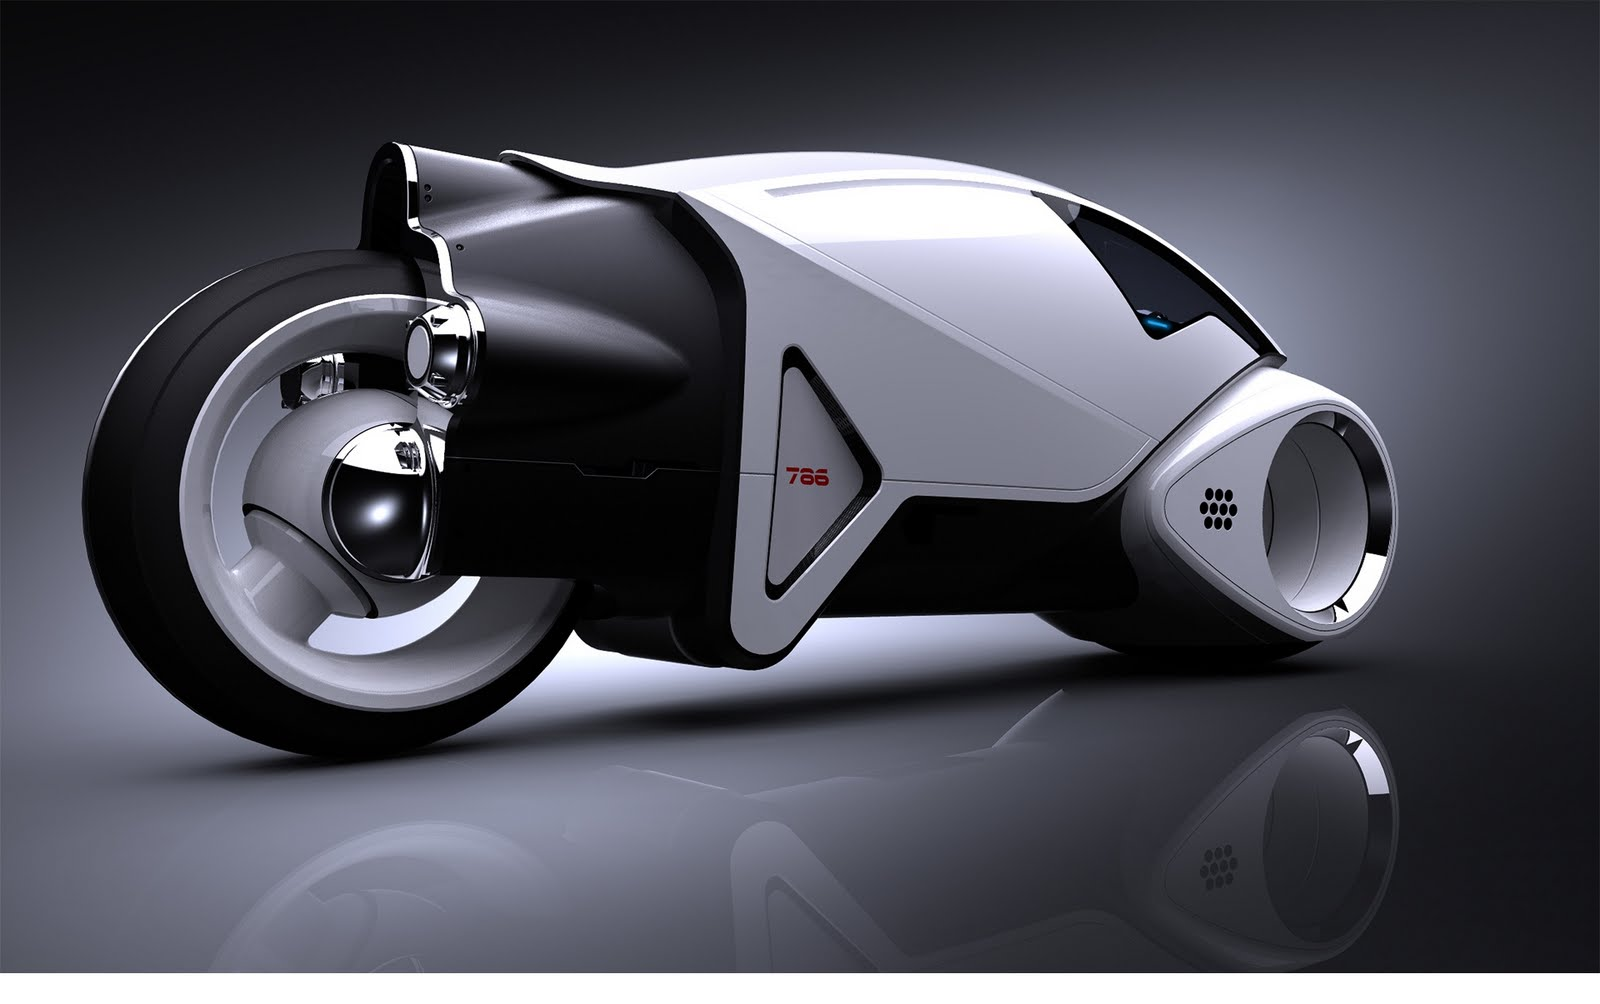 Aranes S Blog Tron Legacy Light Cycle And